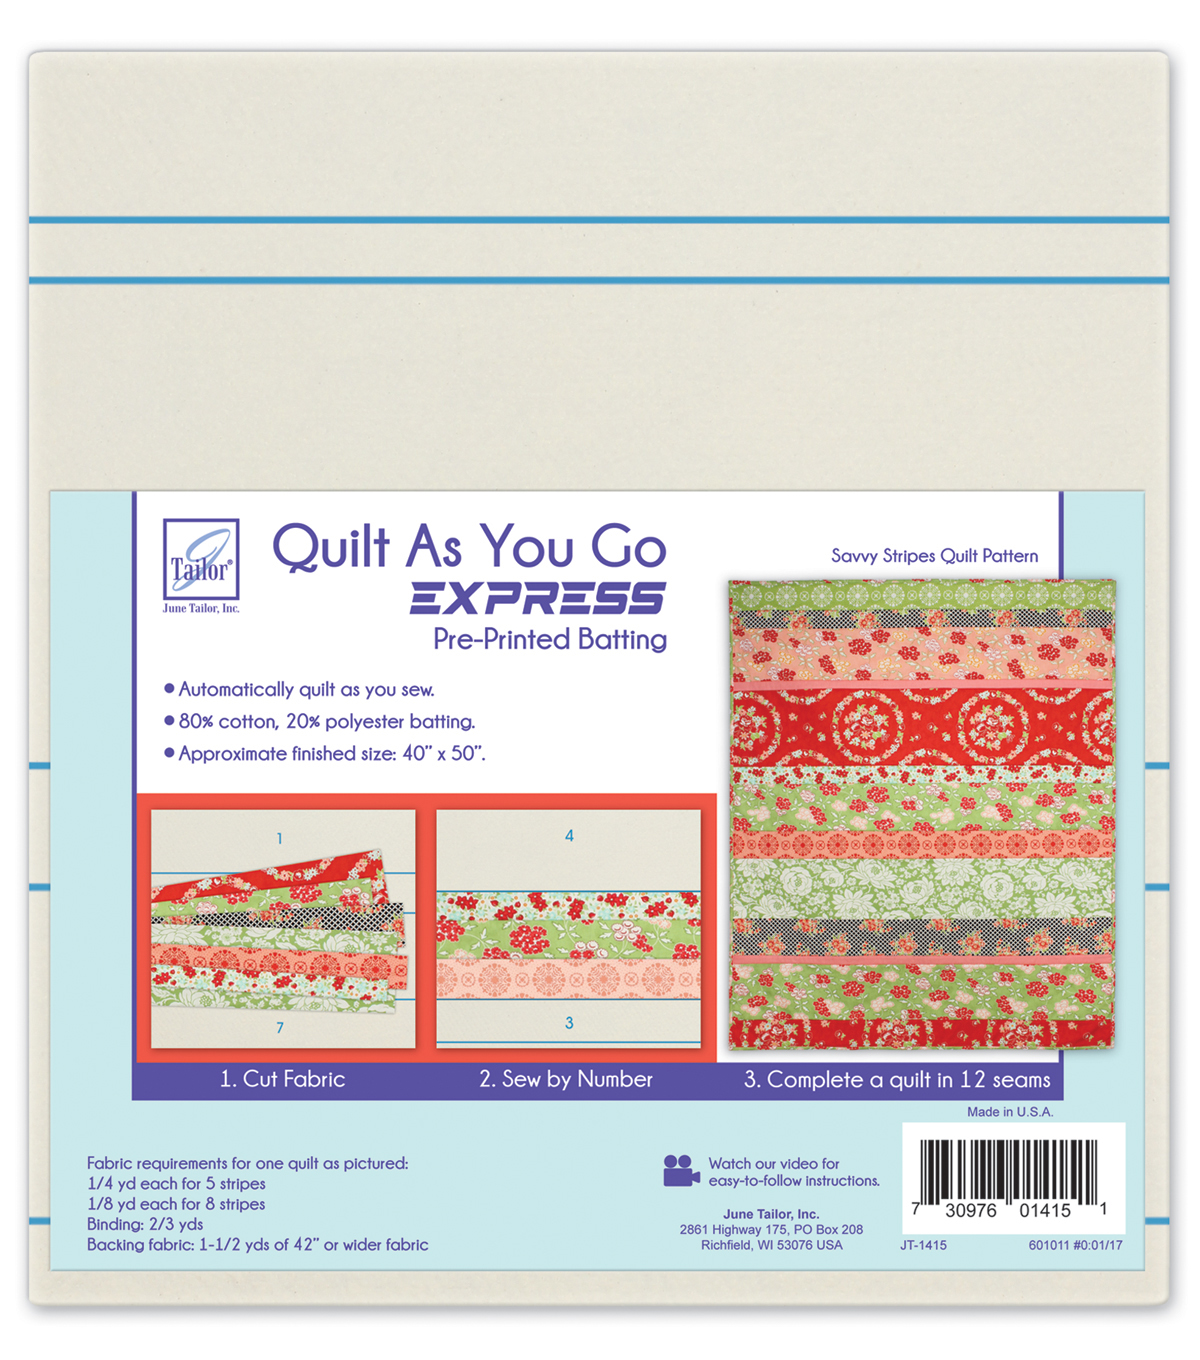 Quilt As You Go Express-Savvy Stripes